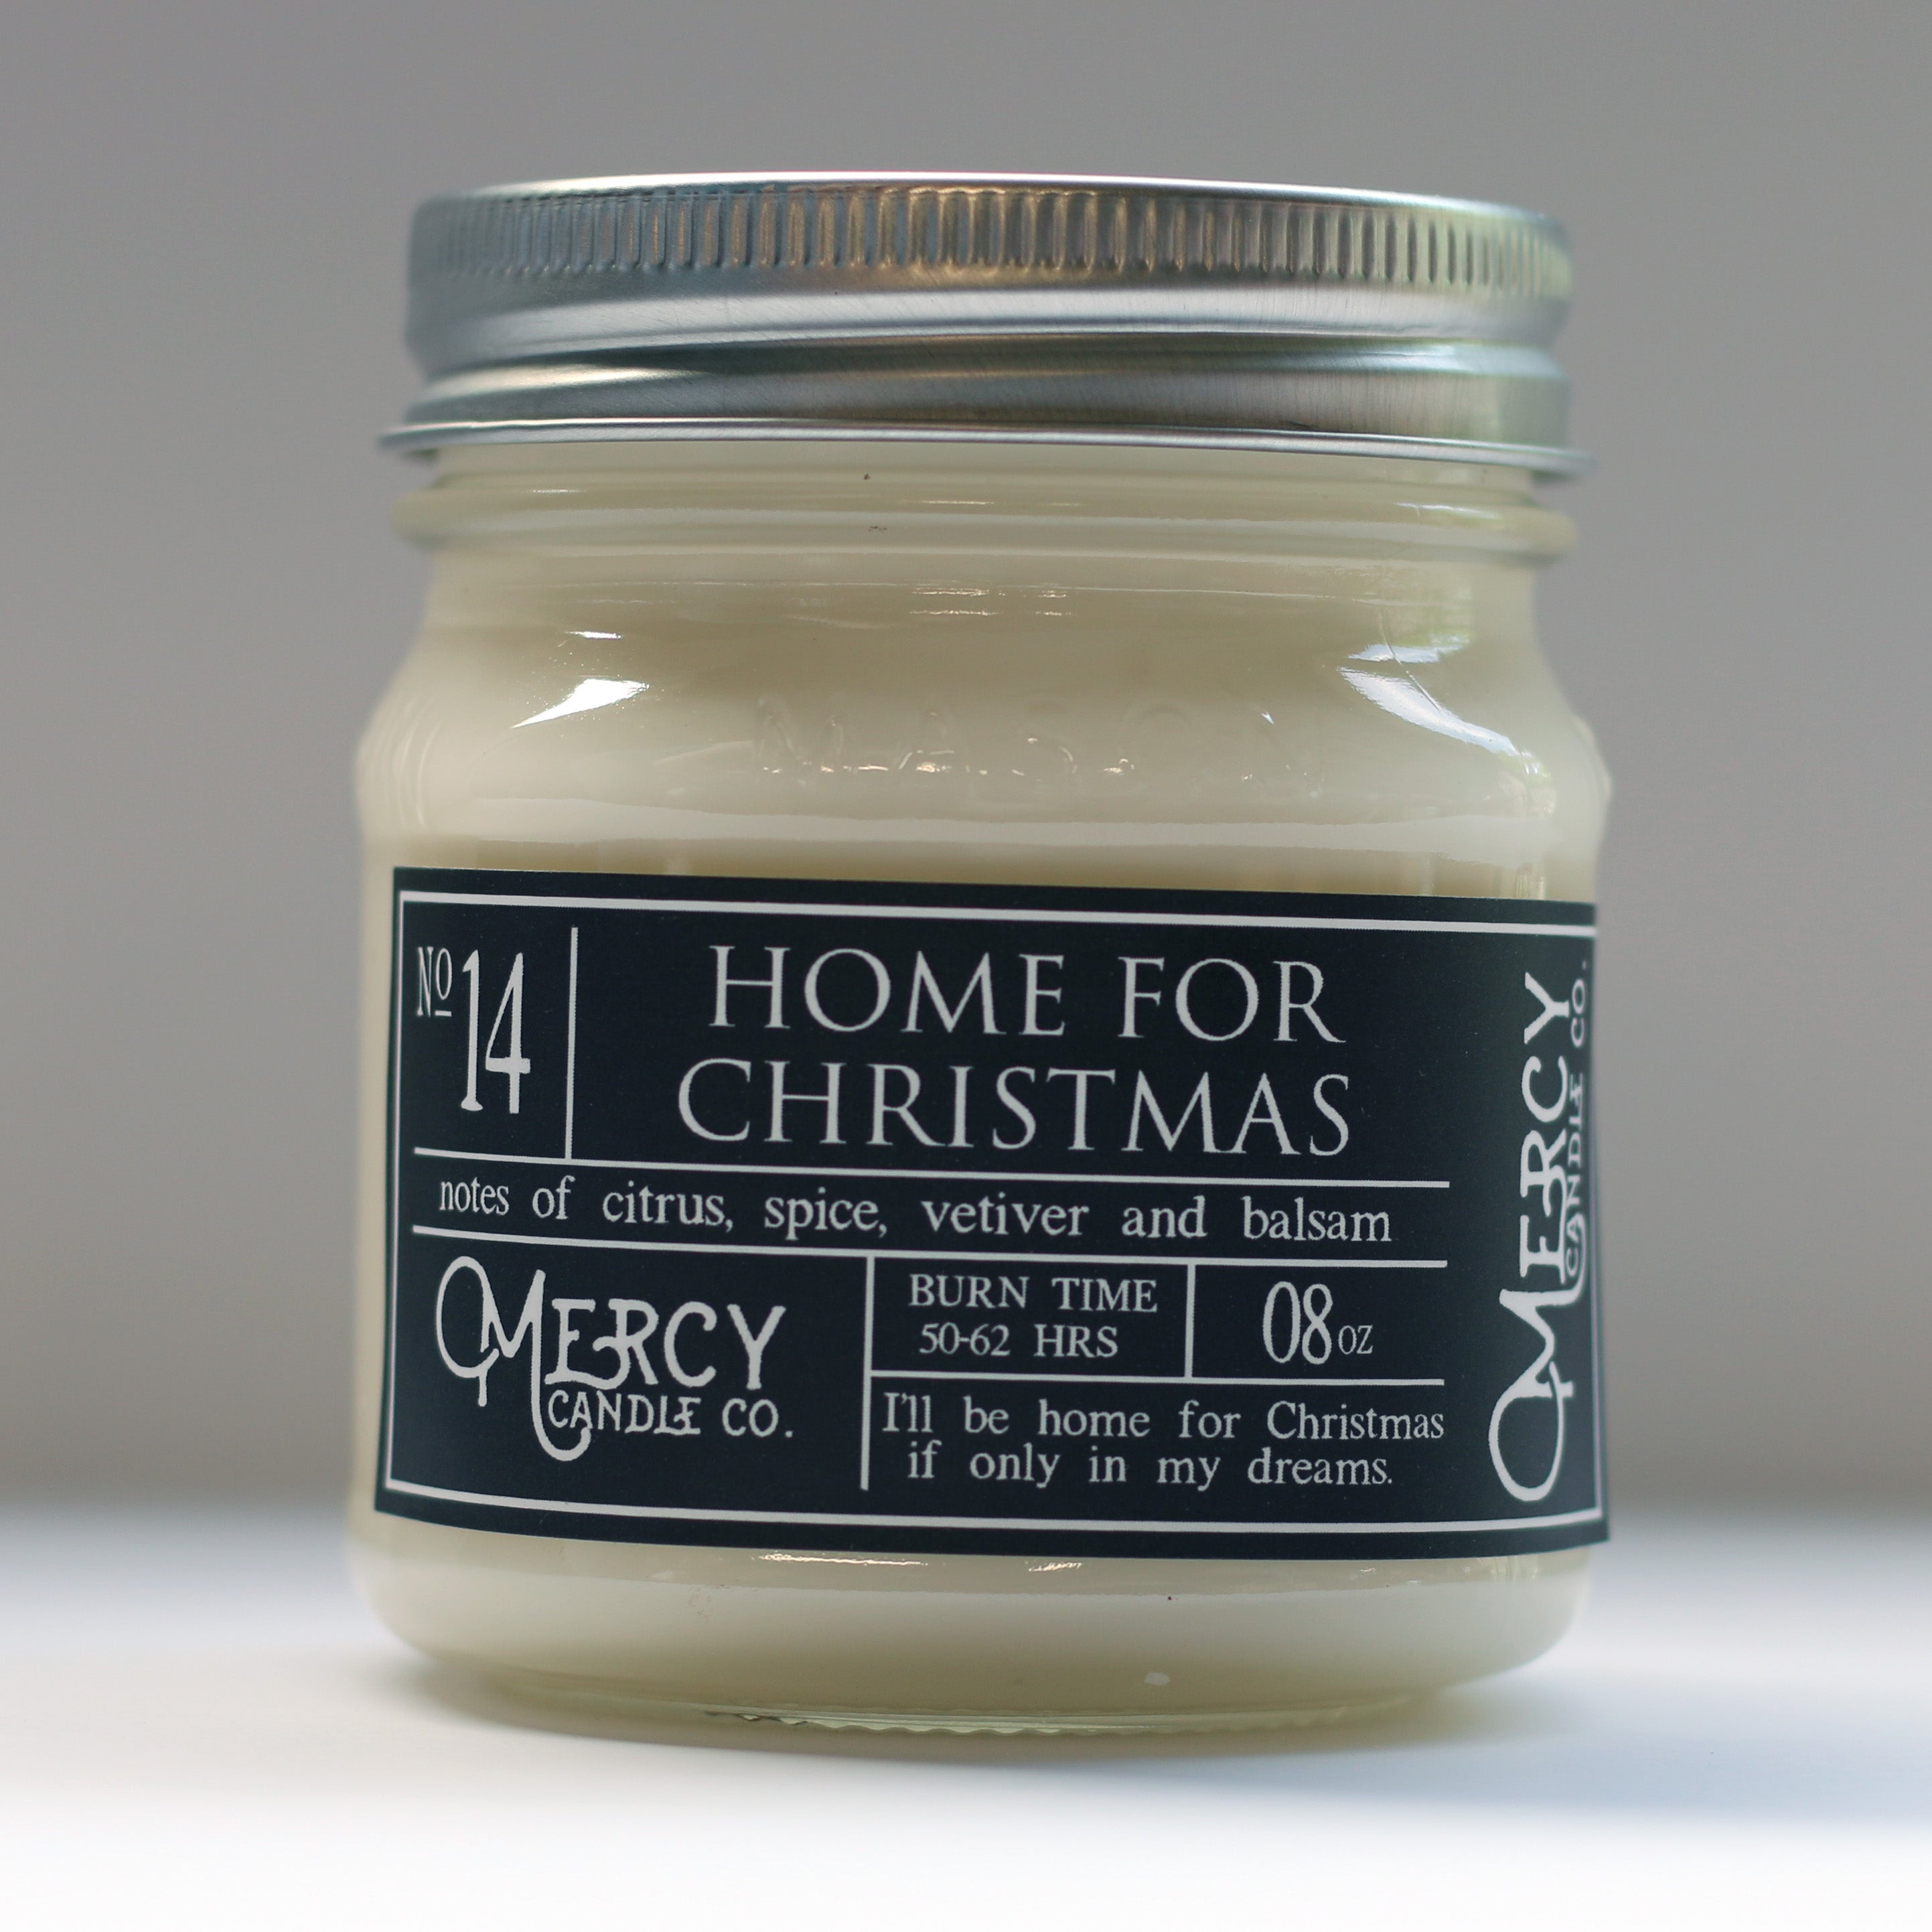 Home for Christmas | 08oz Mason Jar Candle